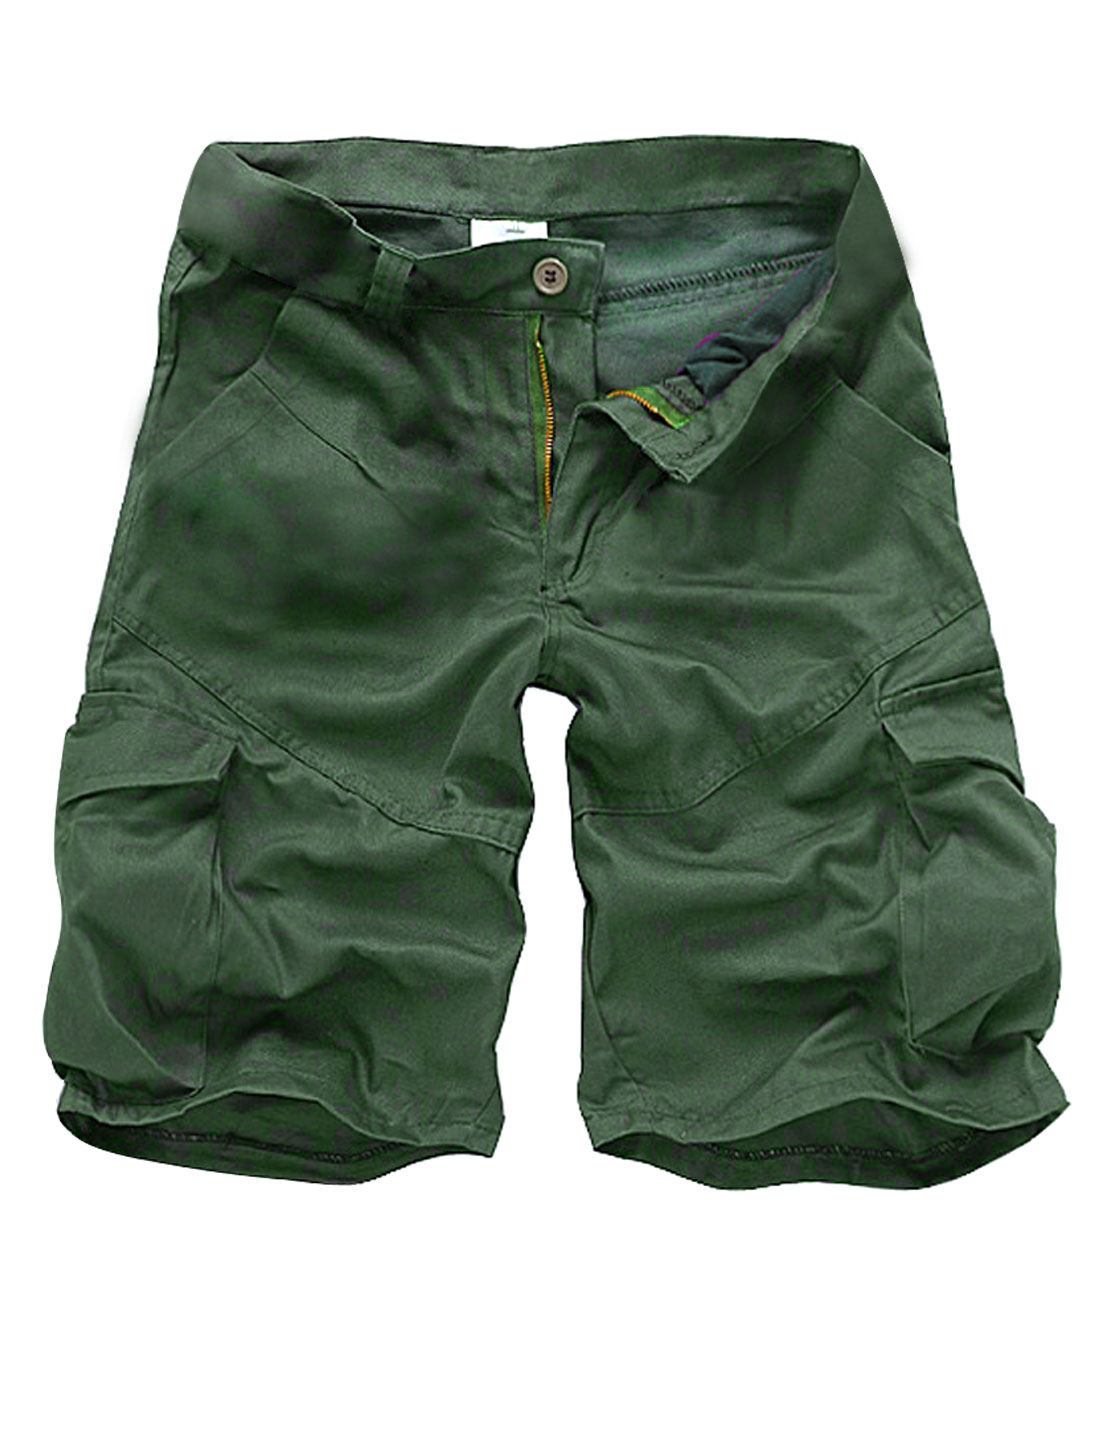 Men Waistband Loop Zip Closure Slant Pockets Casual Short Pants Army Green W34